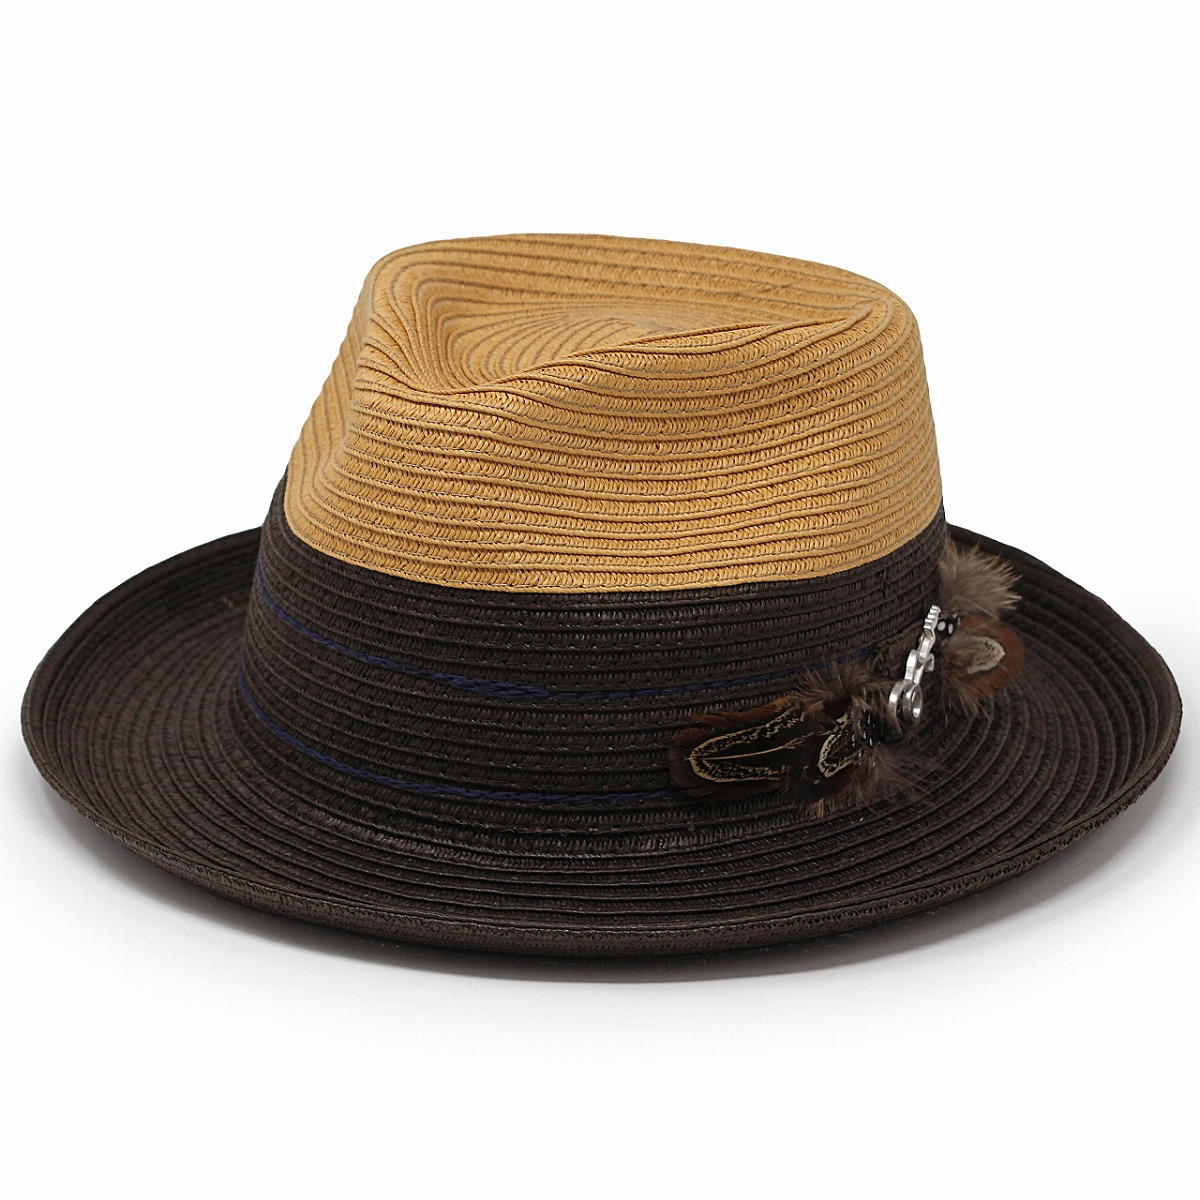 43b61d0bb93 ELEHELM HAT STORE  Gentleman brown tea  straw hat  with the paper ...